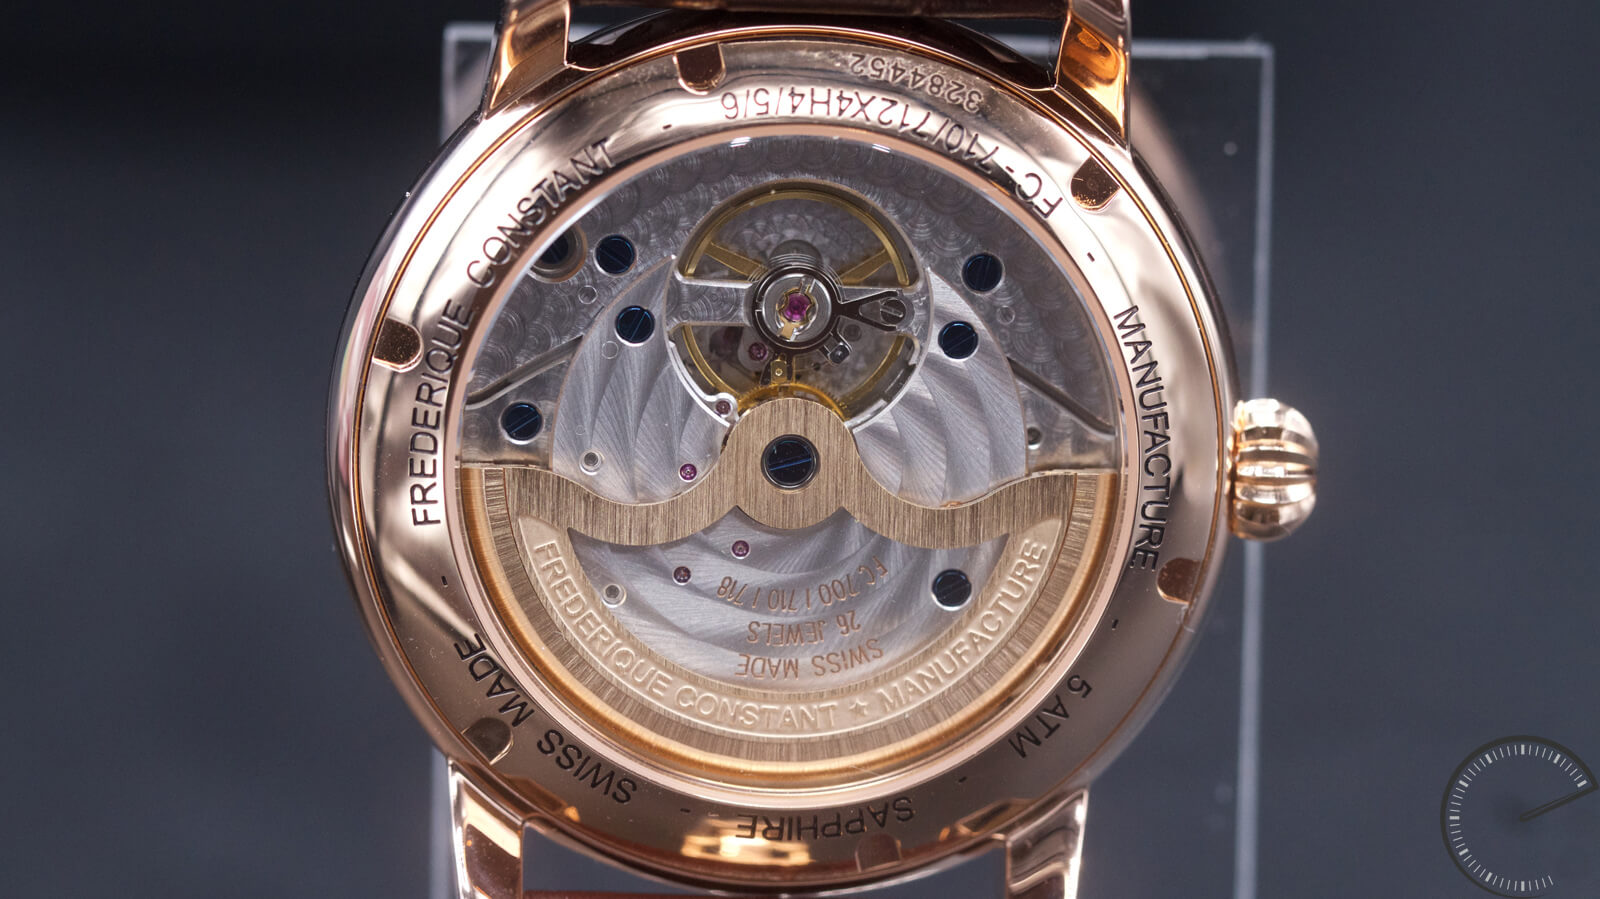 Frederique Constant Manufacture Classic - classically styled timepiece with guilloche pattern dial and Manufacture movement